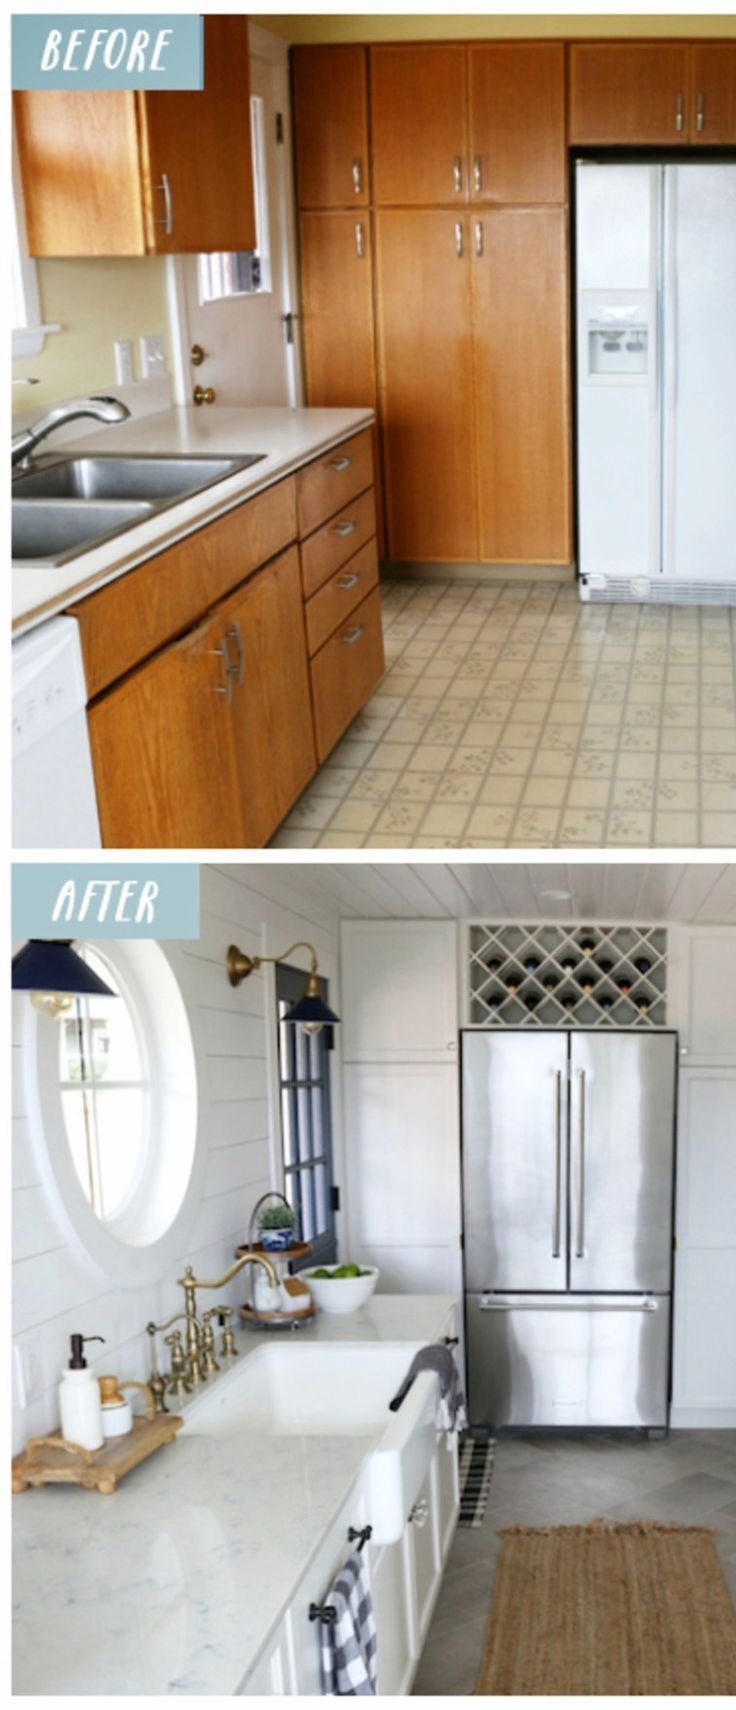 Small Kitchen Makeovers Before And After Small Kitchens Remodel Ideas And Pictures Kitch Kitchen Remodel Trends Kitchen Design Small Small Kitchen Makeovers Small kitchen before and after photos